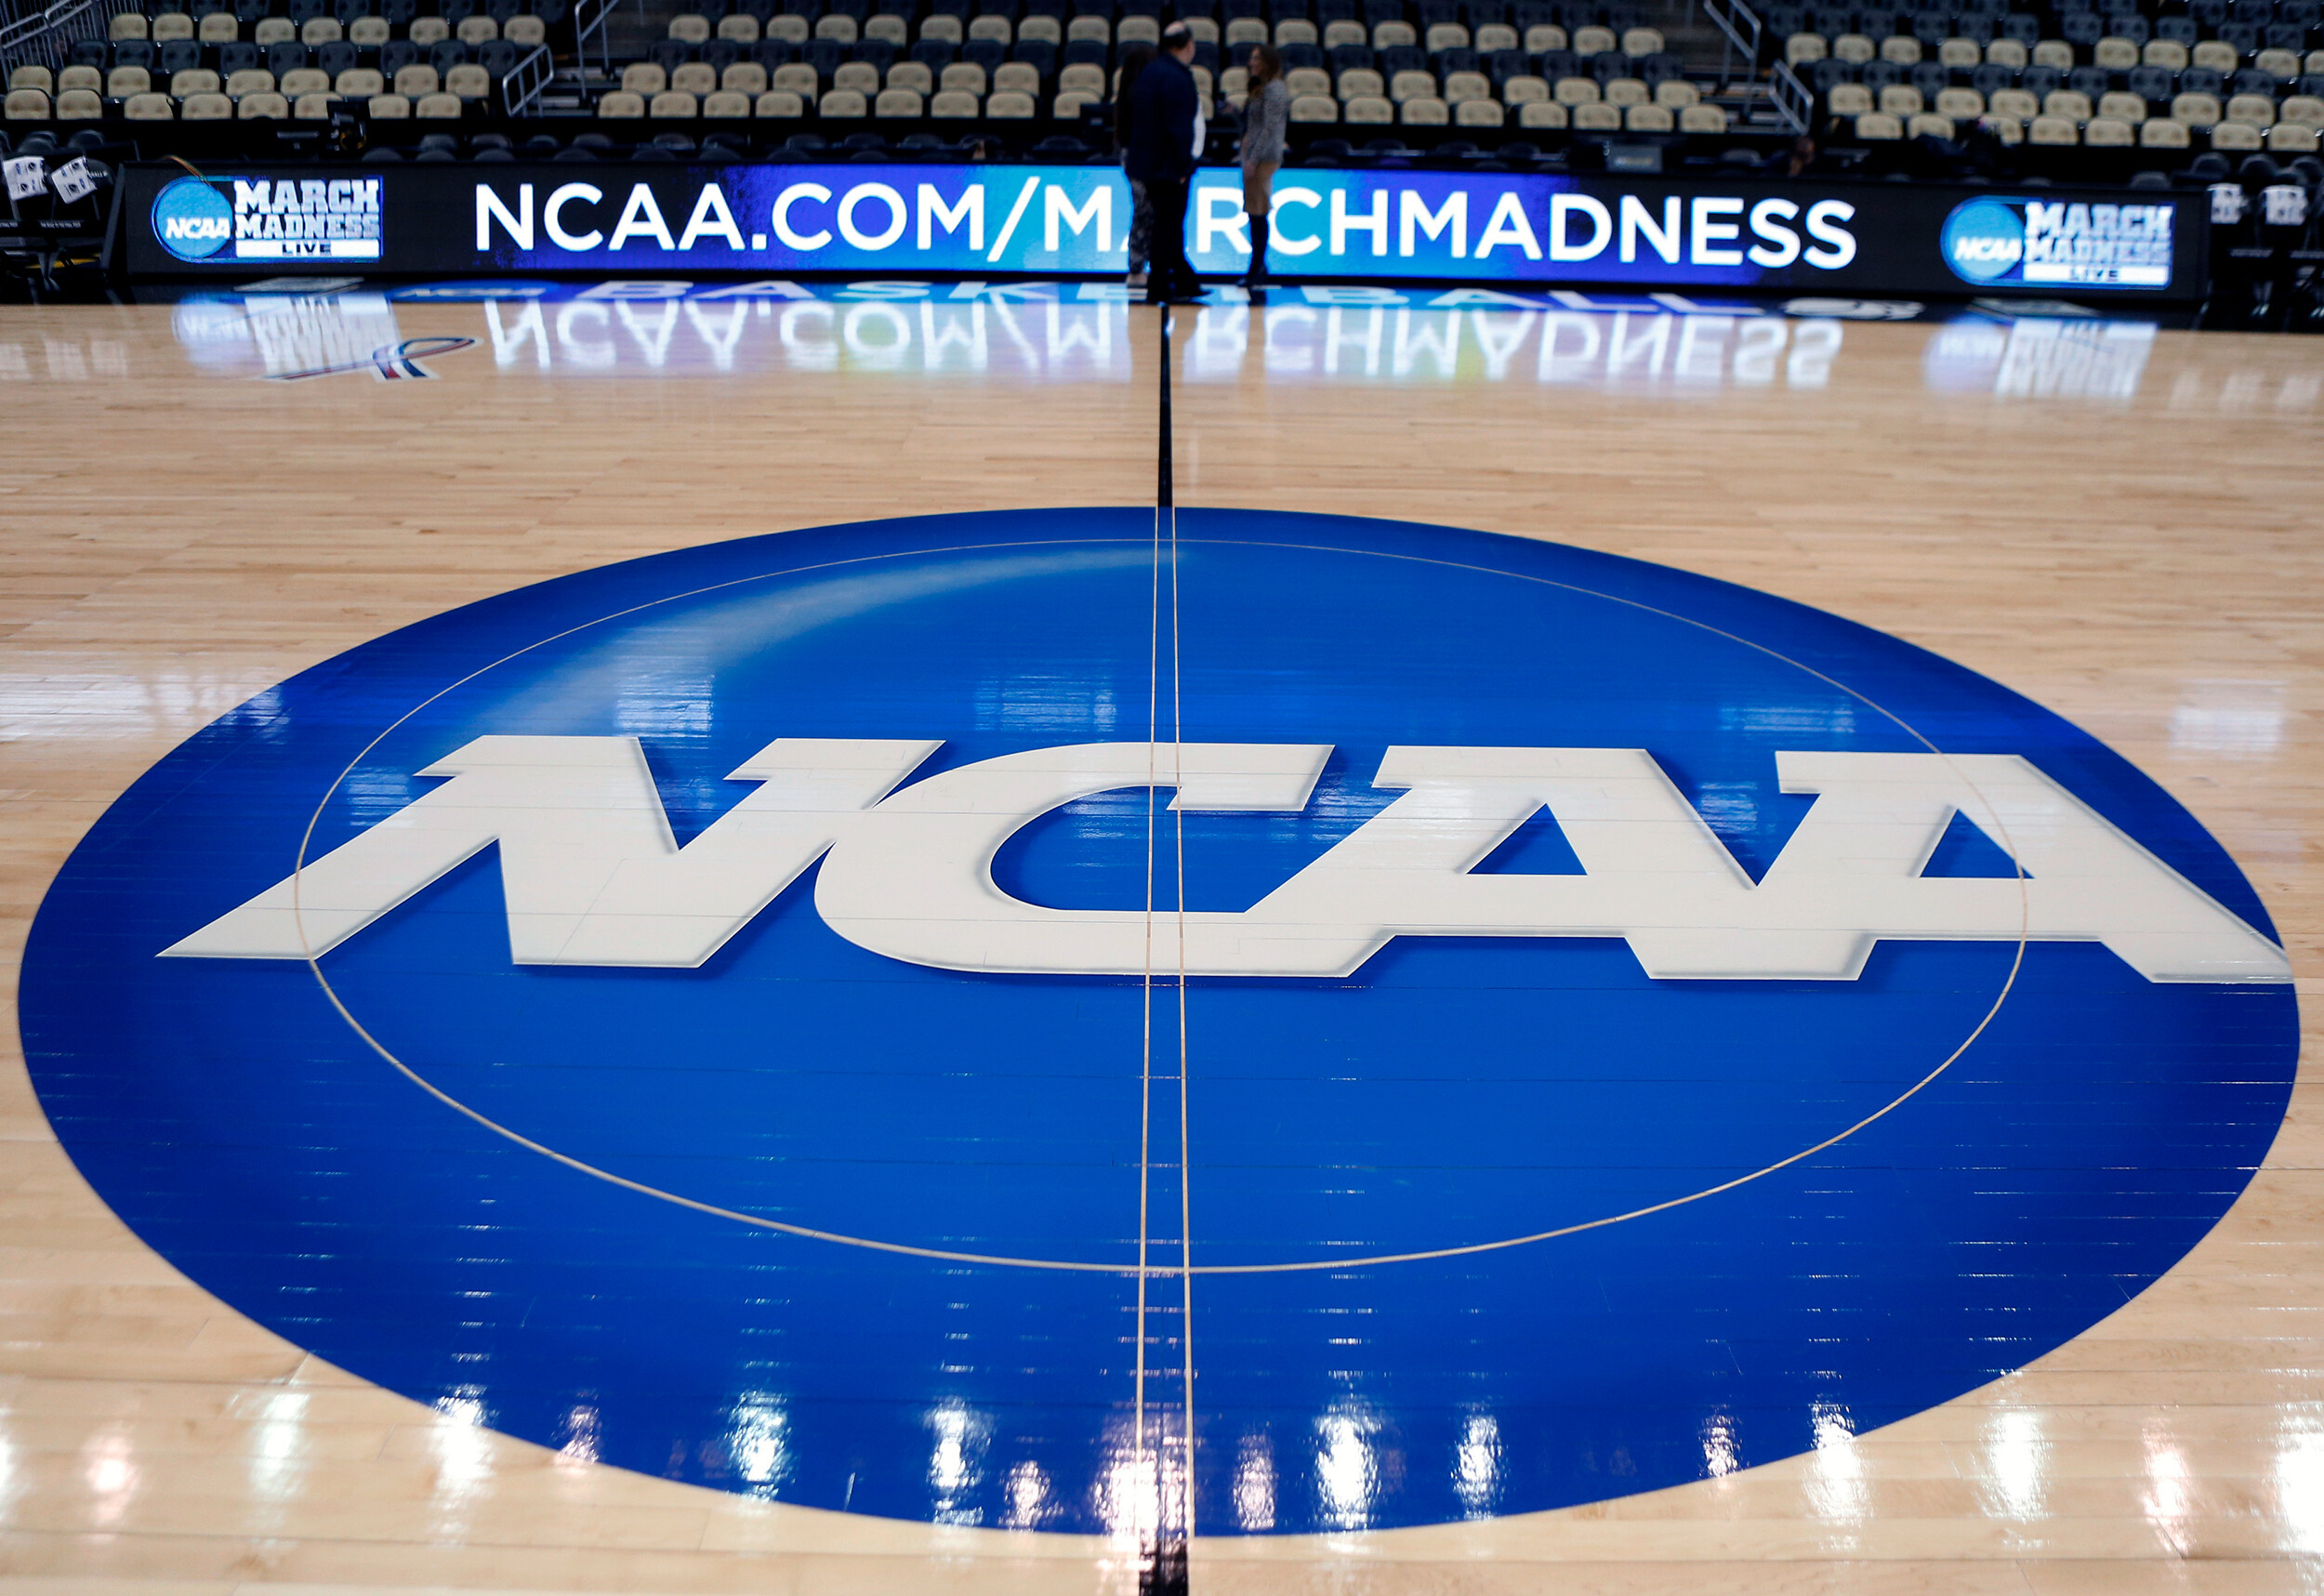 Starting Thursday, college athletes can profit from endorsements, social media and other sources of income